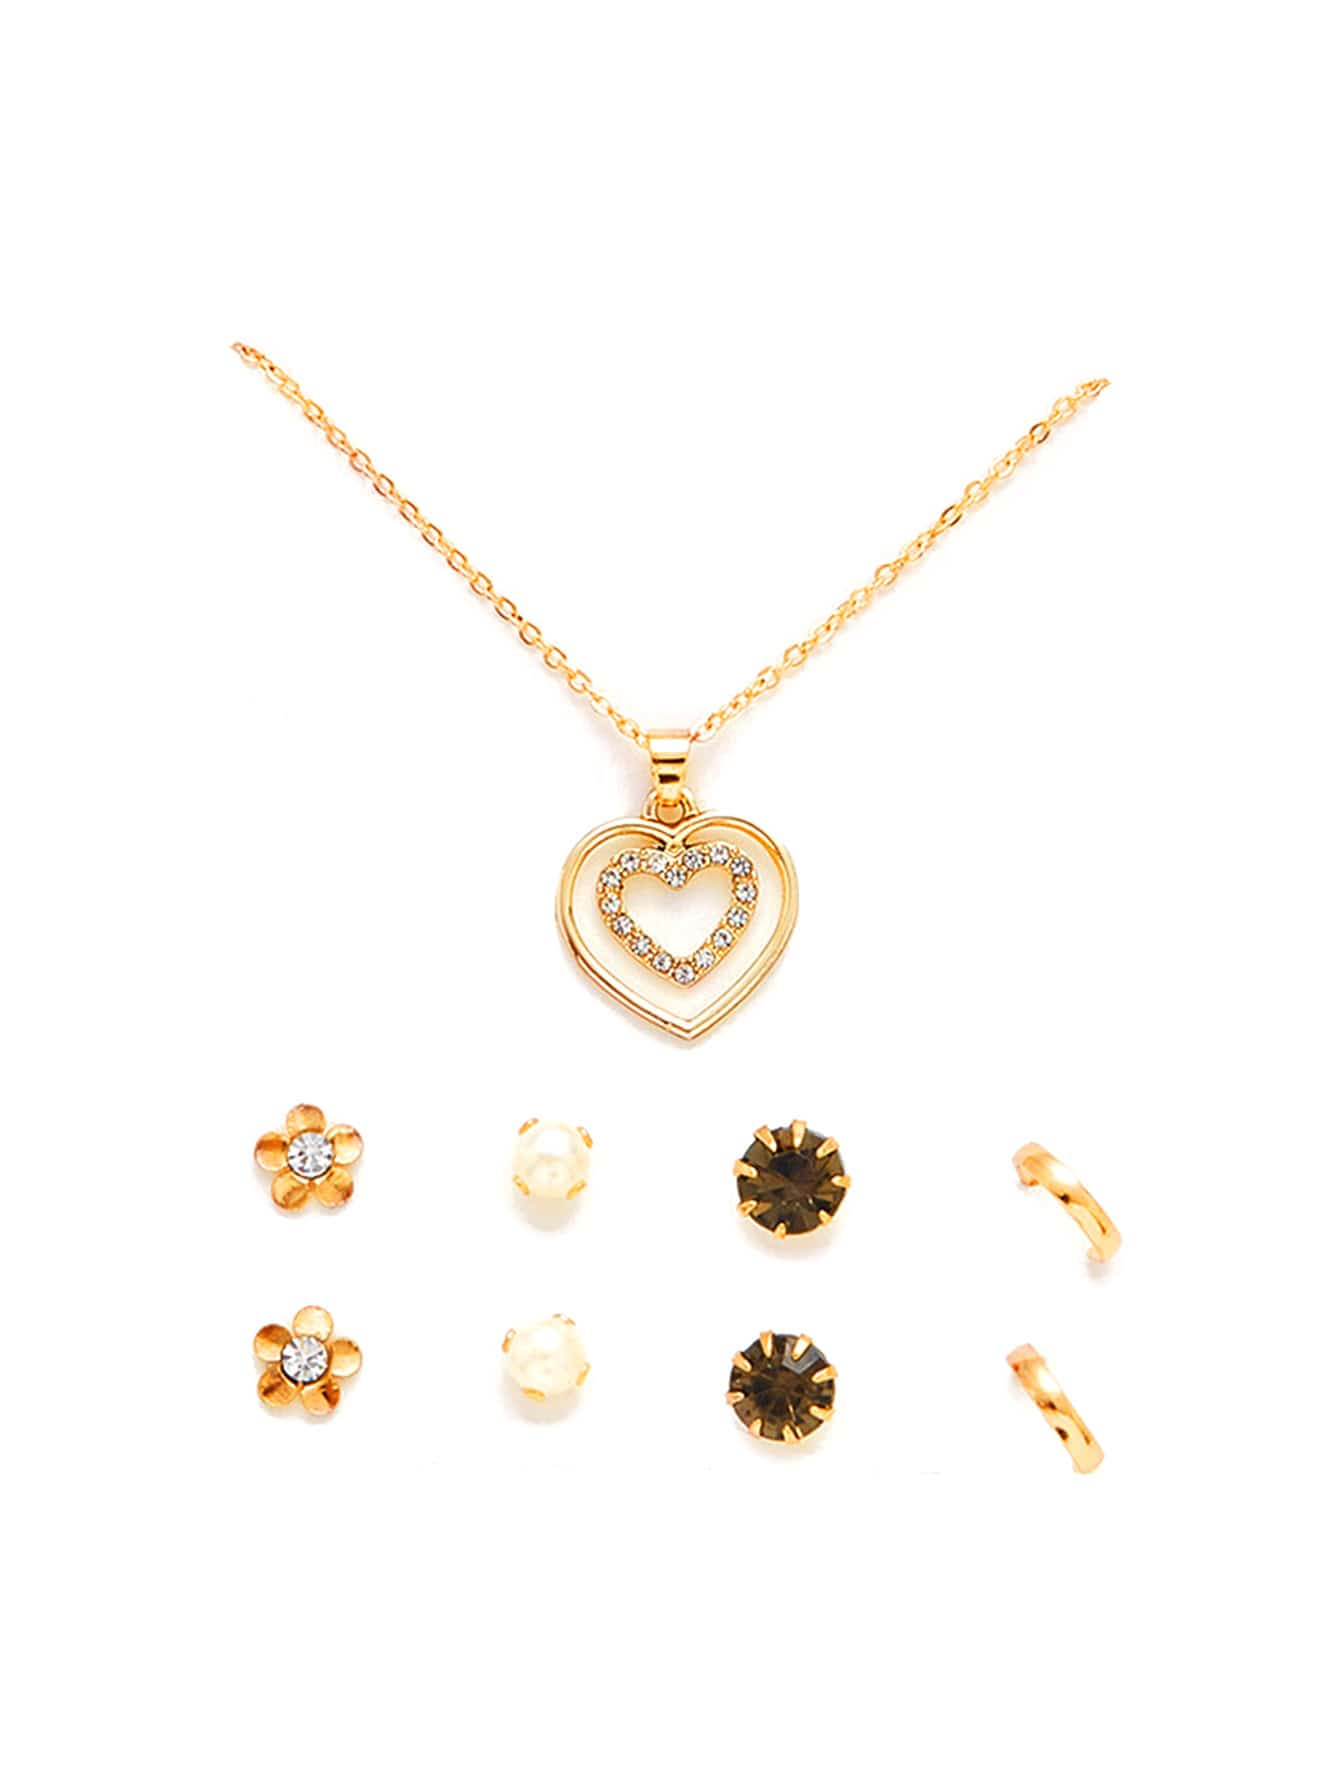 Layered Heart Pendant Necklace & Stud Earring Set джемпер для мальчика overmoon by acoola borei цвет серый 21100310001 1900 размер 164